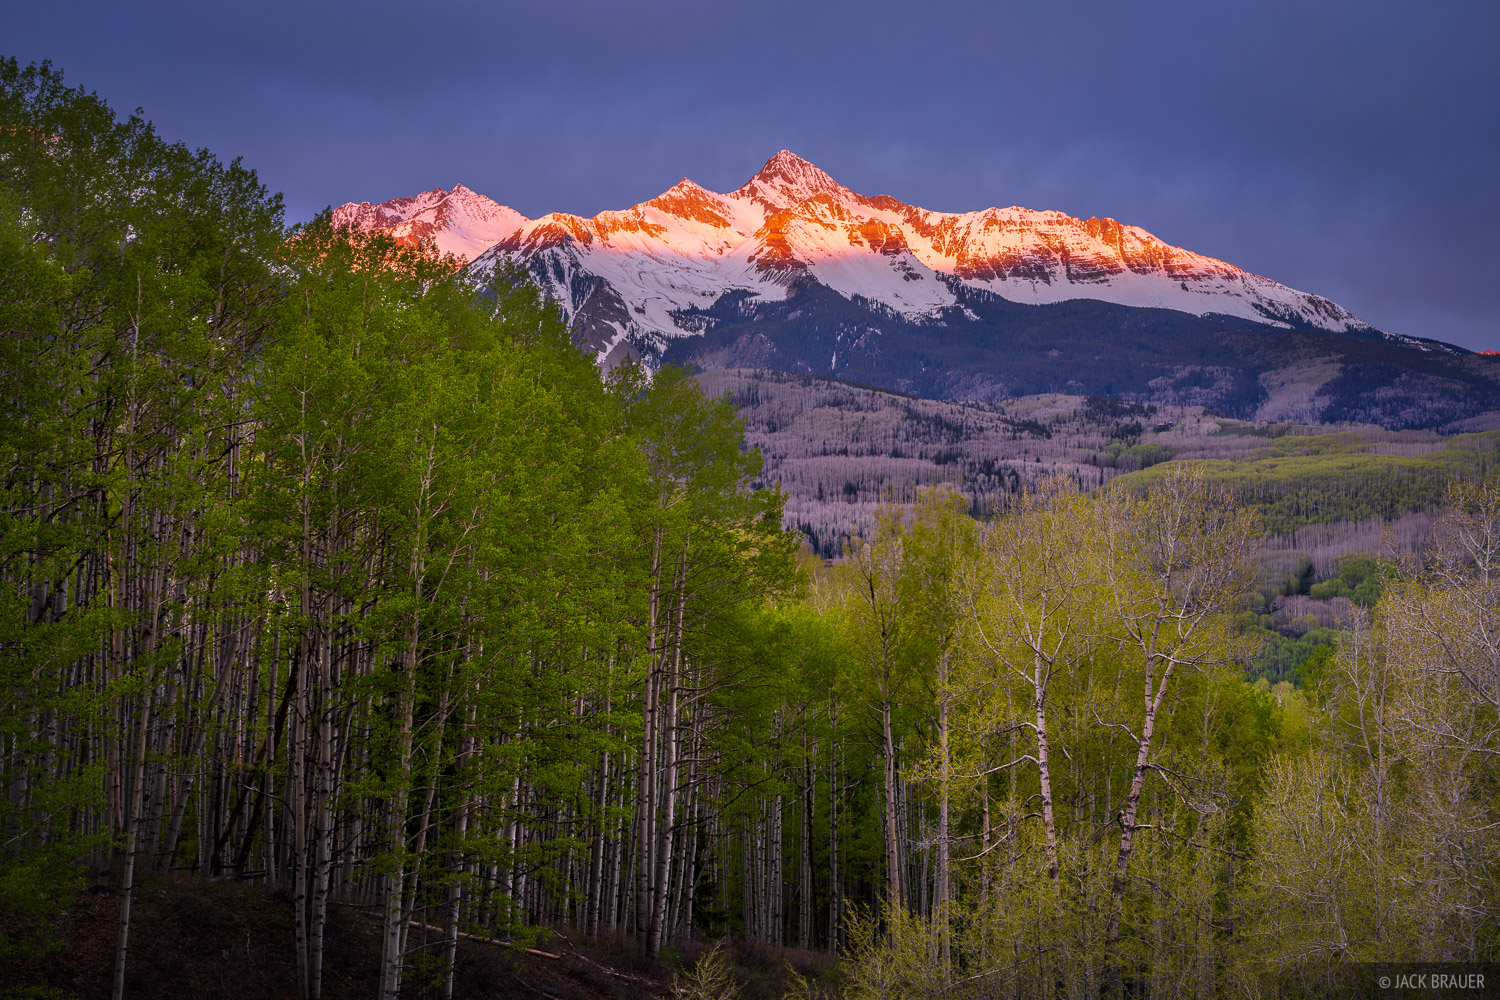 A brief moment of sunrise light illuminating Wilson Peak (14,016 ft.) on a cloudy spring morning in the San Juan Mountains near...